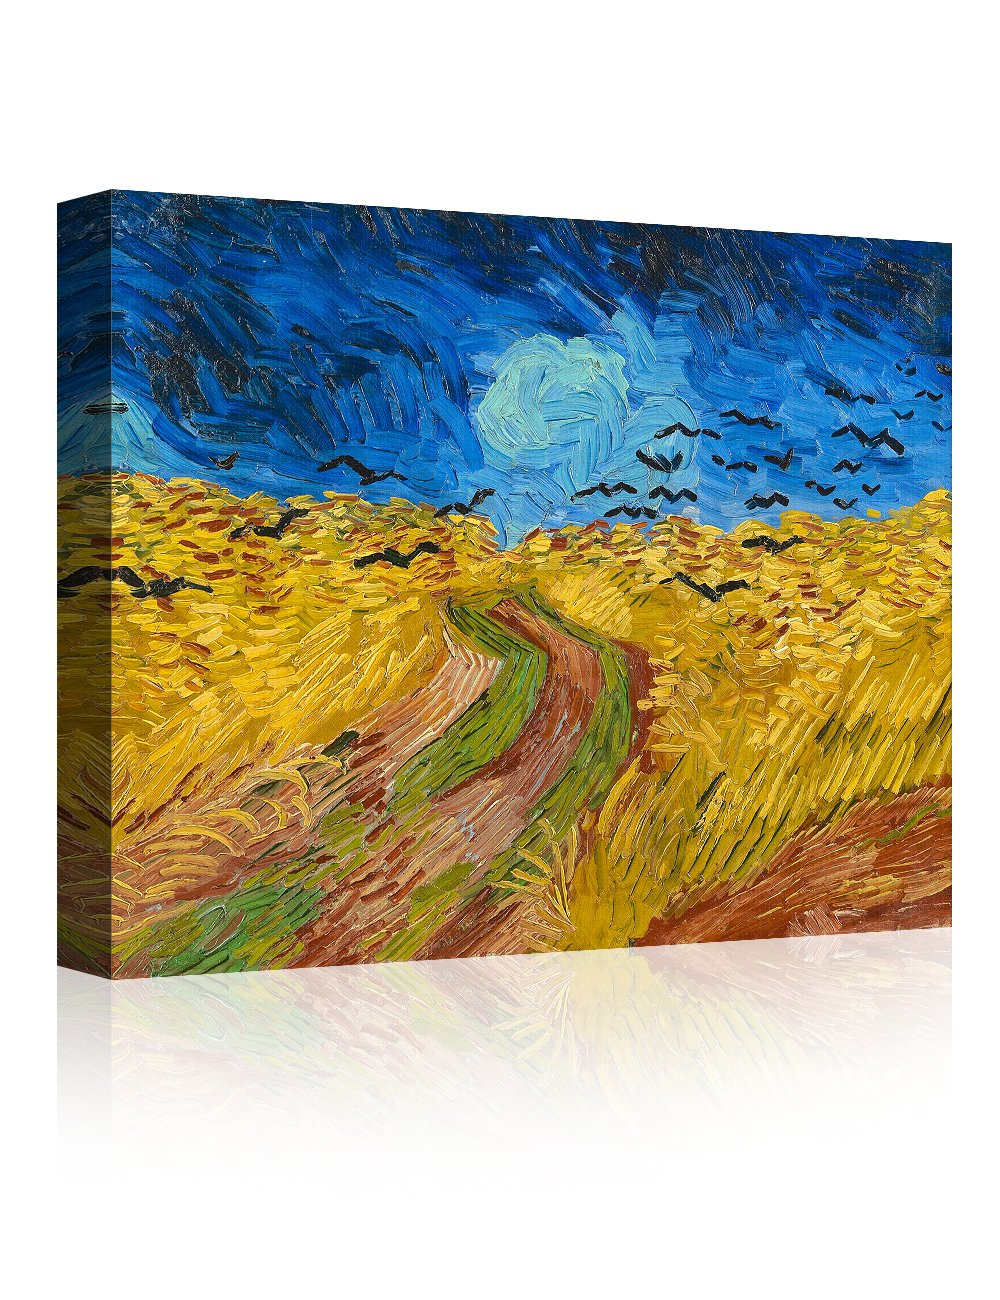 IPIC - Wheat Field with Crows, Vincent Van Gogh Art Reproduction. Giclee Canvas Prints Wall Art for Home Decor 10#F(20X16)